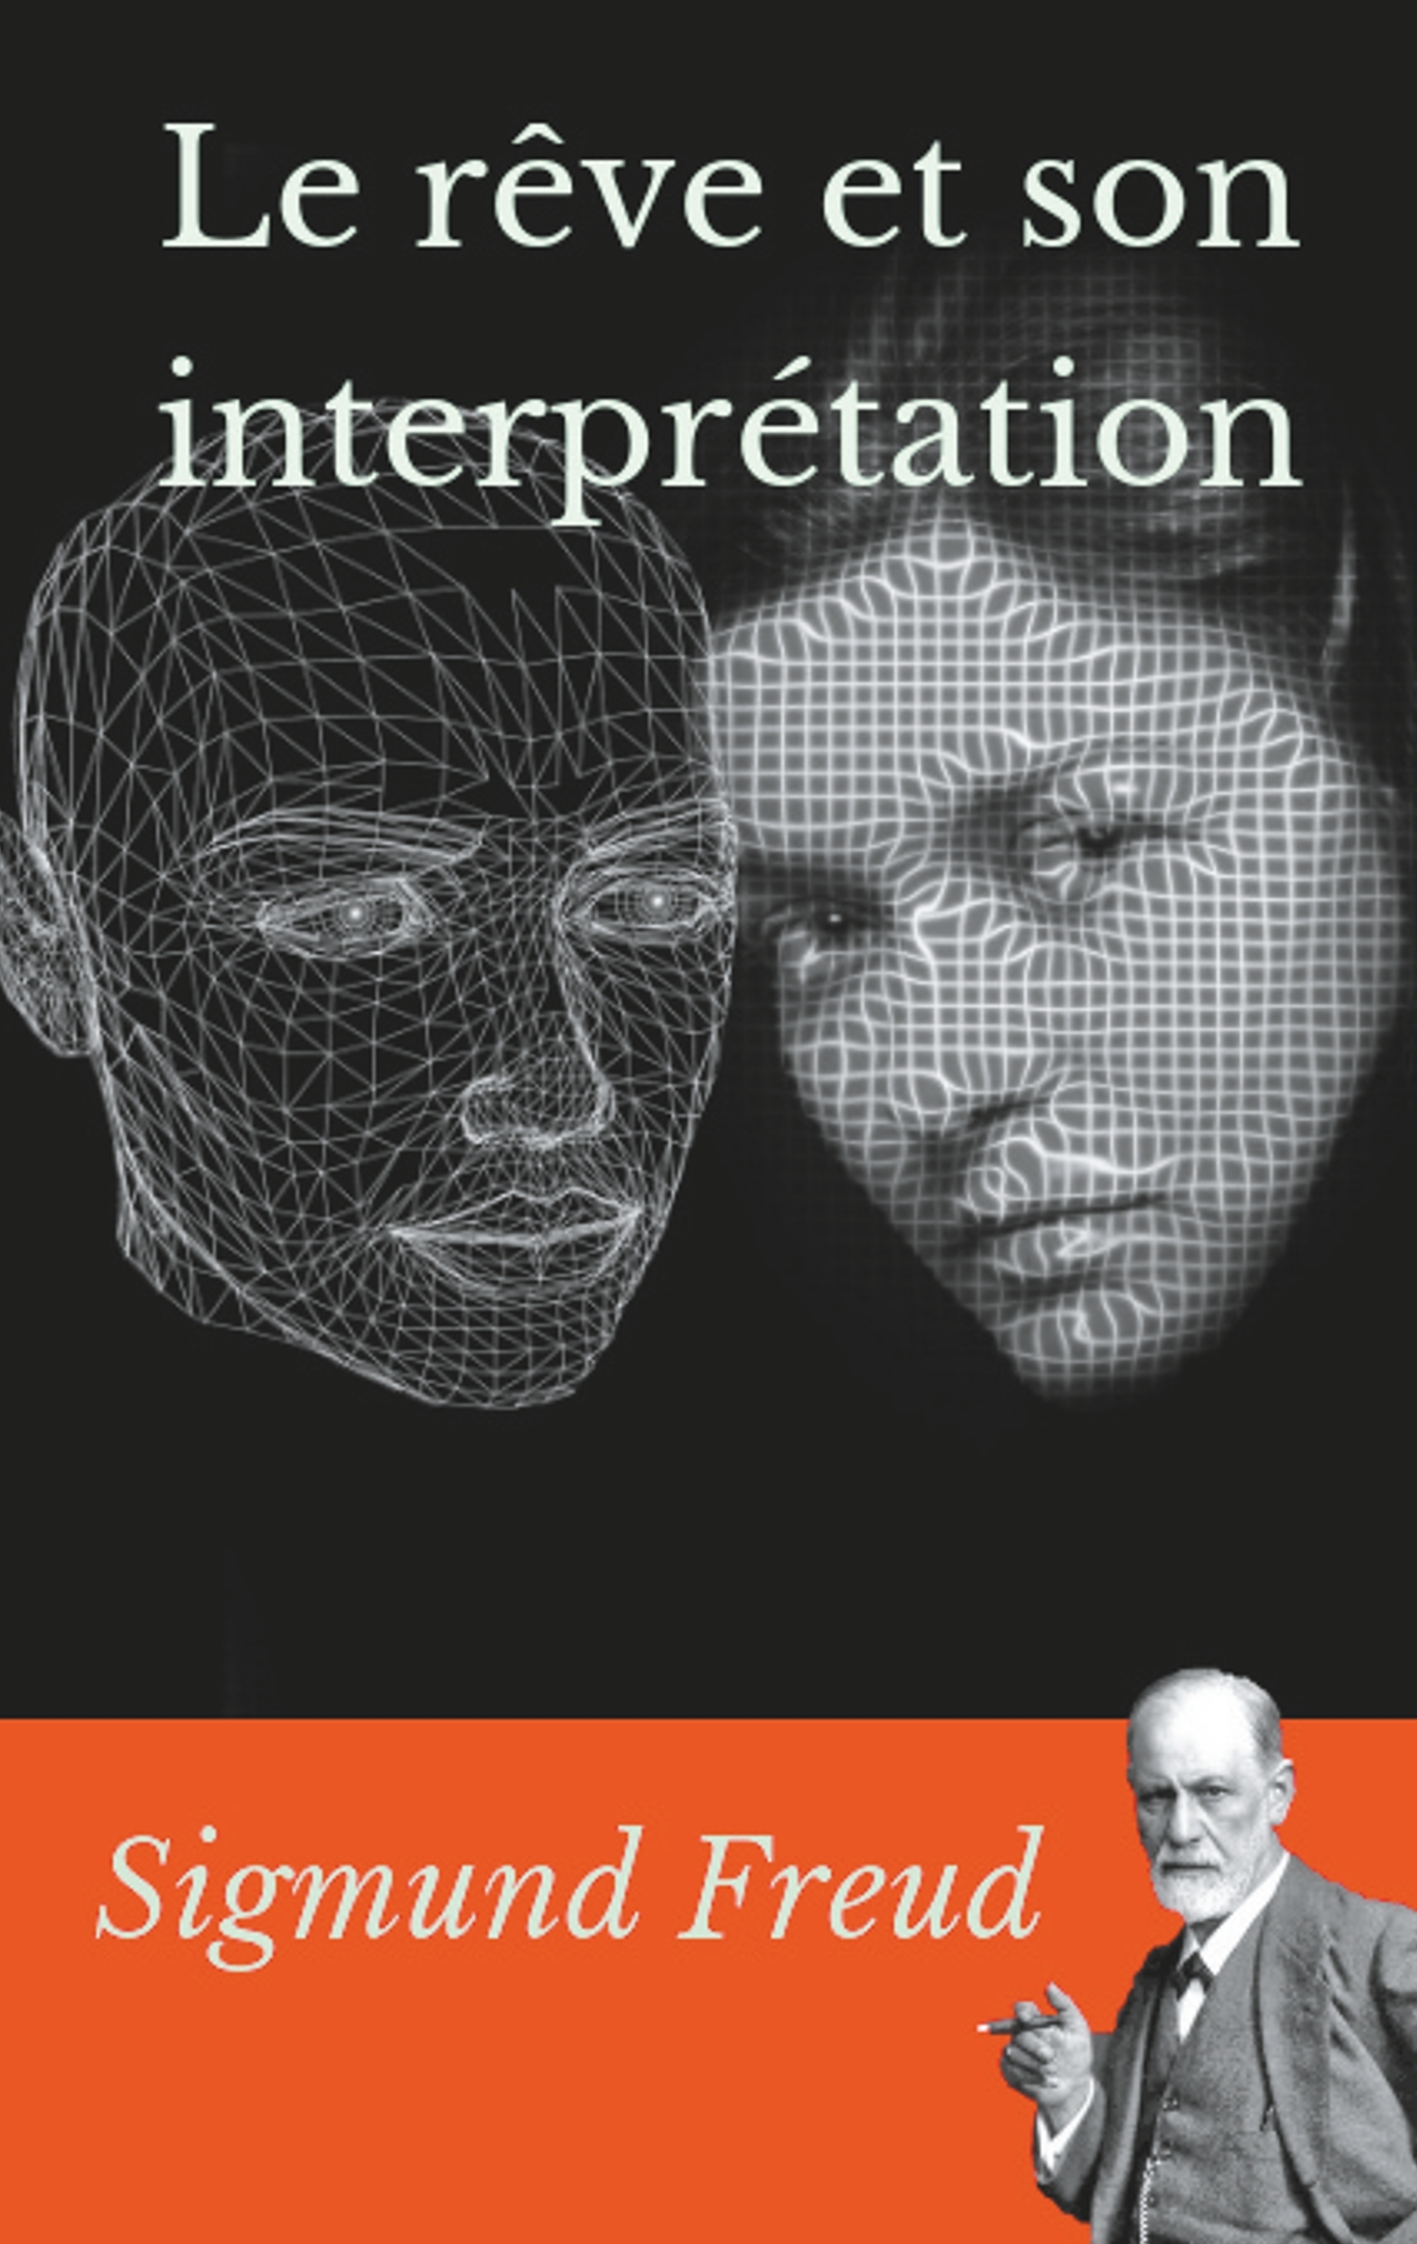 LE REVE ET SON INTERPRETATION - UN ESSAI DE SIGMUND FREUD SUR L'INTERPRETATION DES REVES